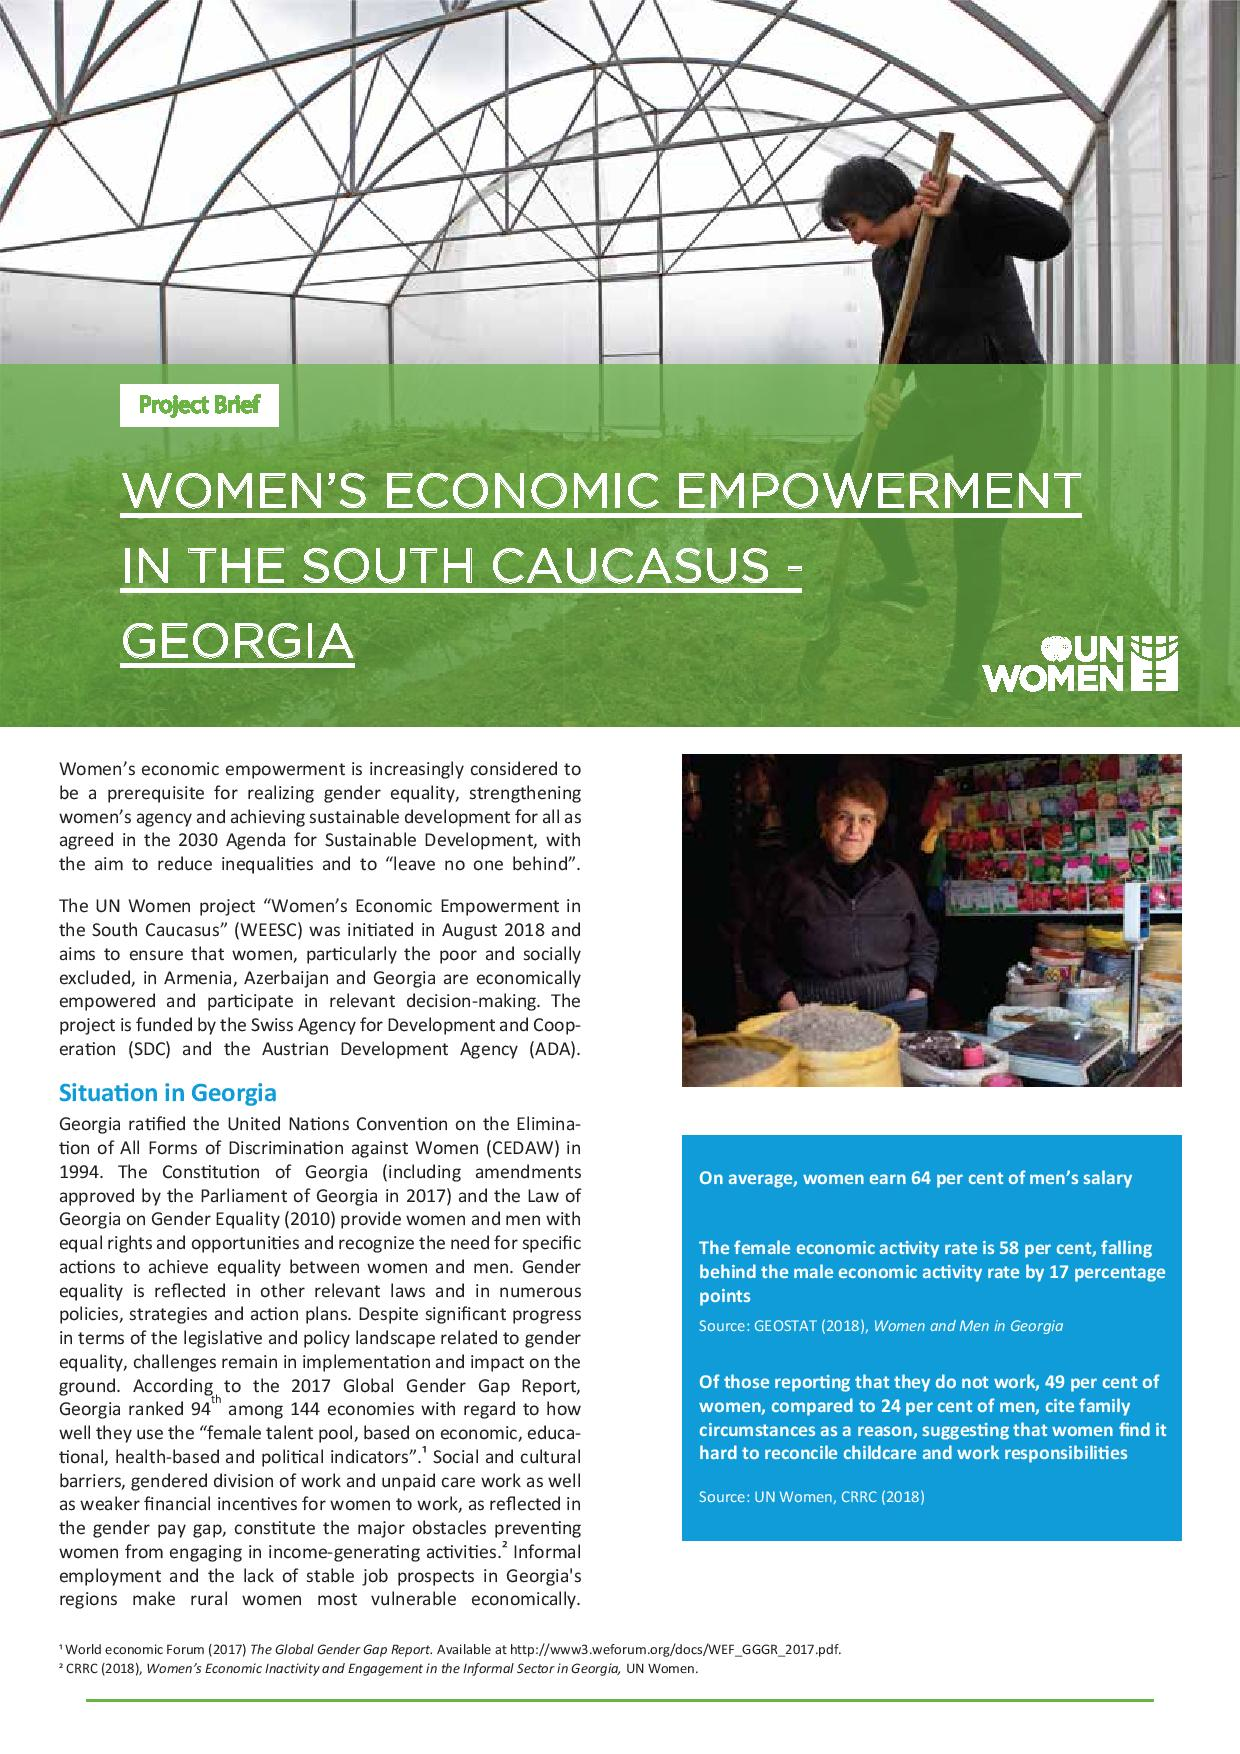 Women's Economic Empowerment in the South Caucasus - Georgia